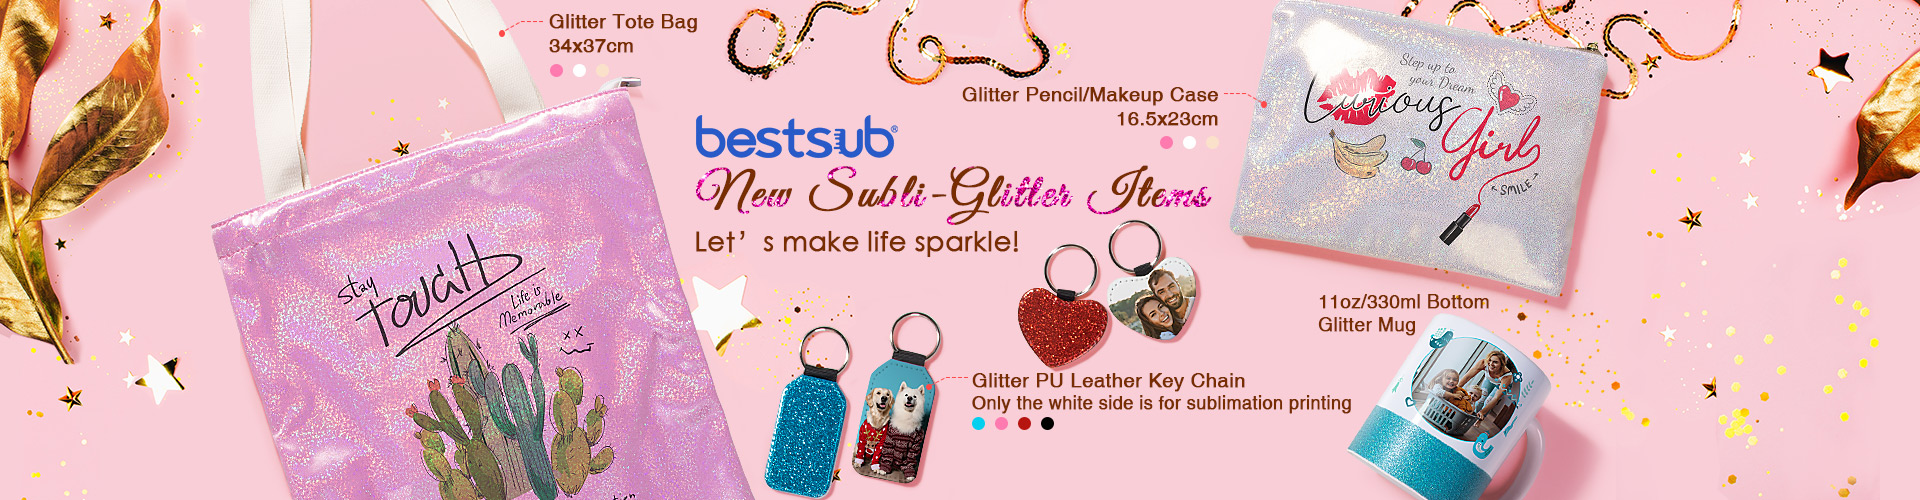 2020-1-17_New_Subli-Glitter_Items_New_web